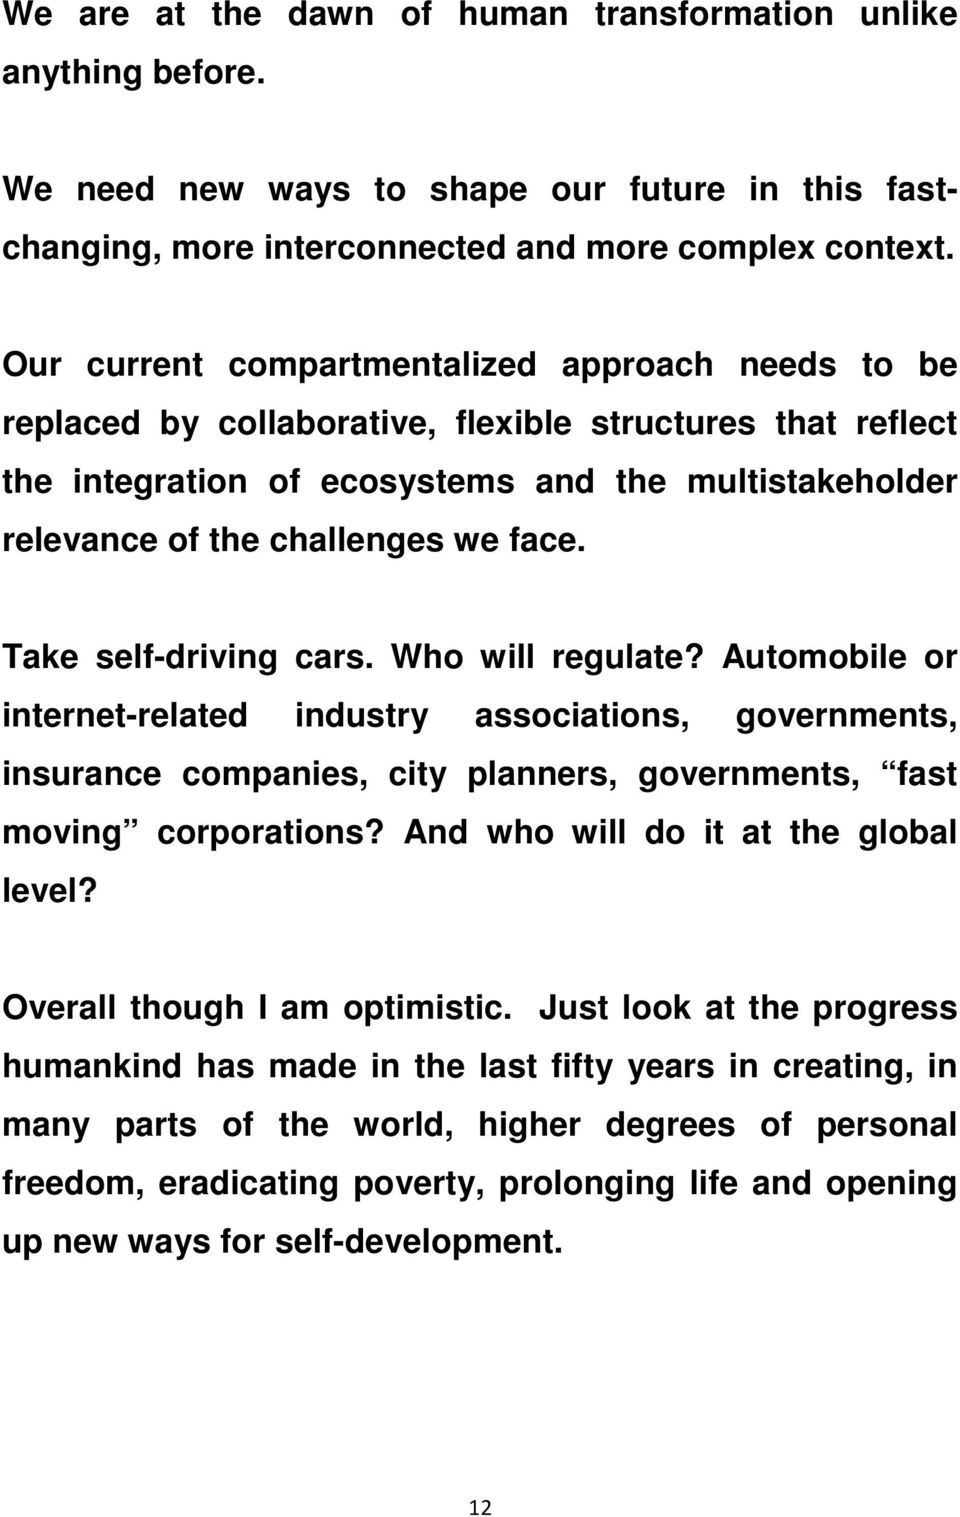 face. Take self-driving cars. Who will regulate? Automobile or internet-related industry associations, governments, insurance companies, city planners, governments, fast moving corporations?